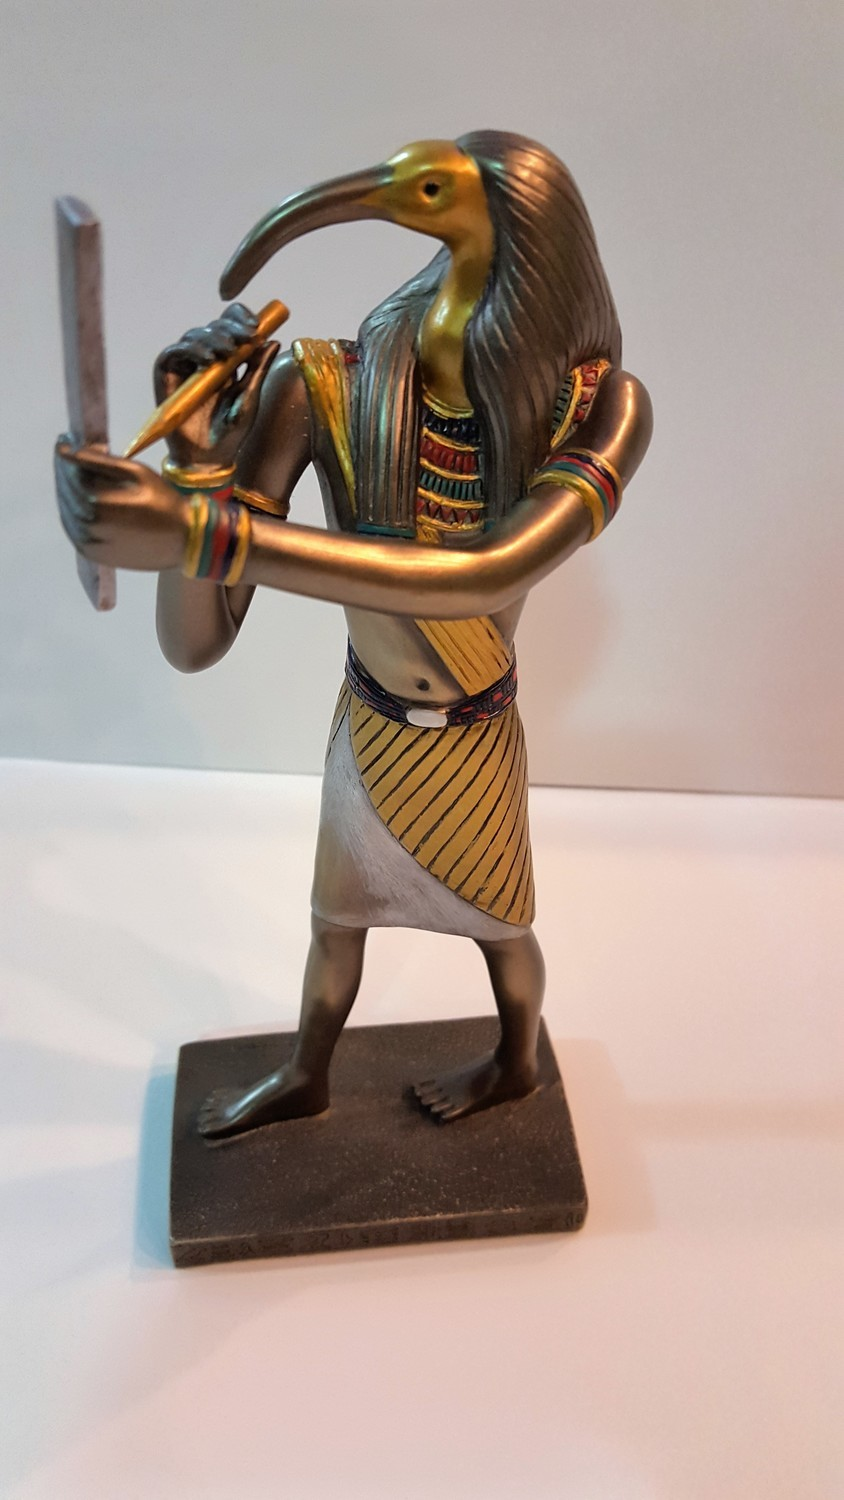 Tehuti (Thoth) Egytian of Knowledge and Wisdom